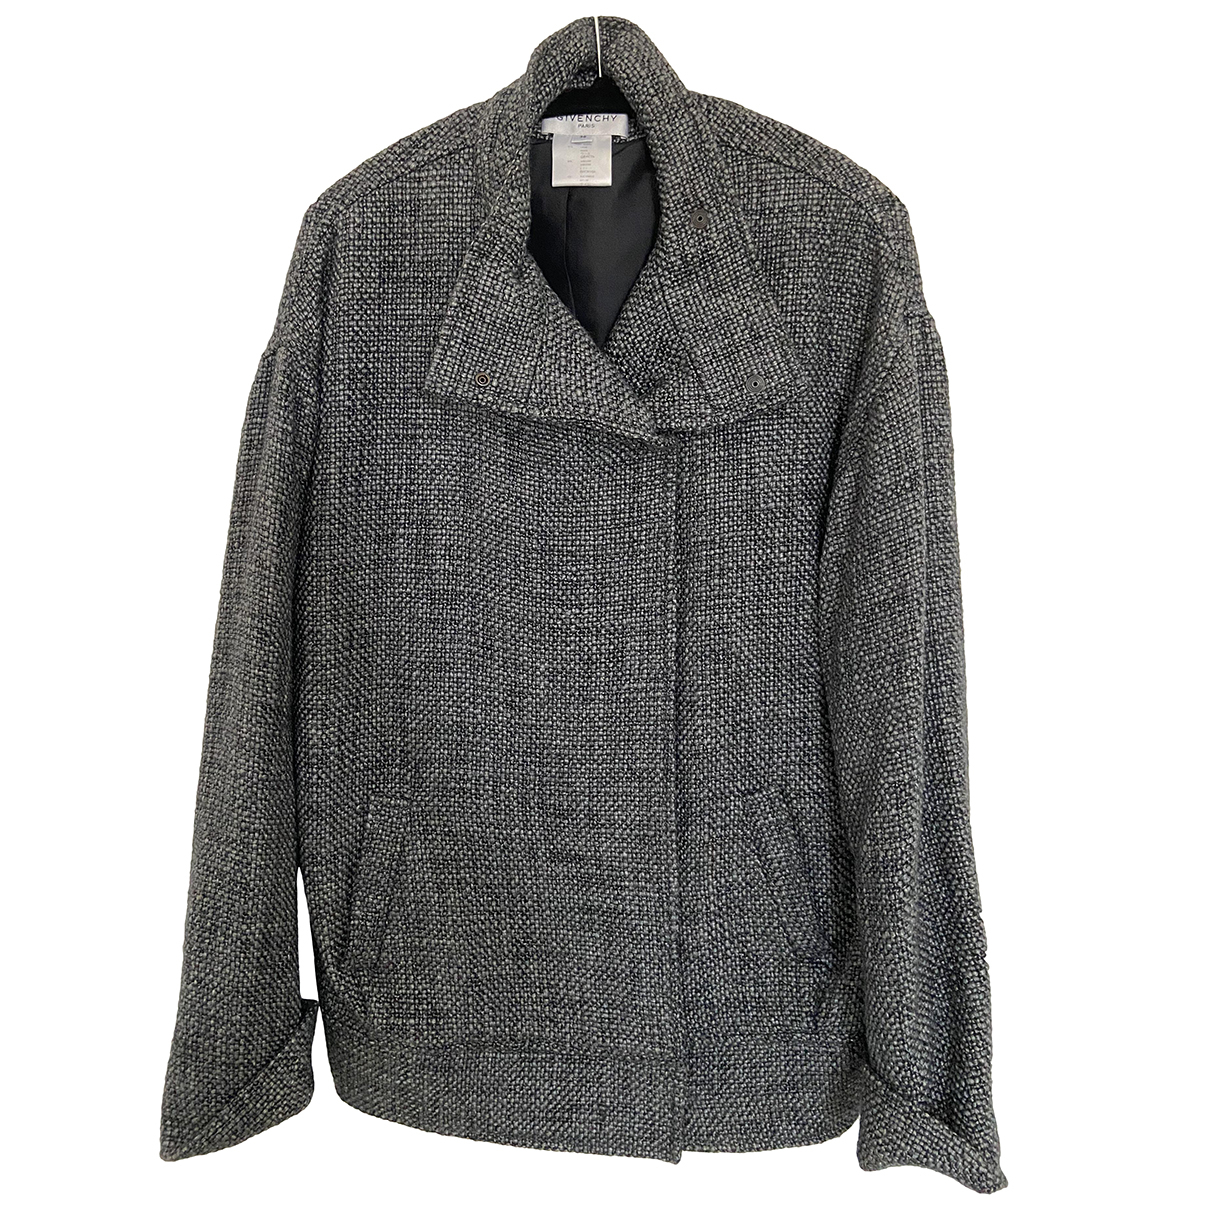 Givenchy N Grey Linen jacket for Women 36 FR